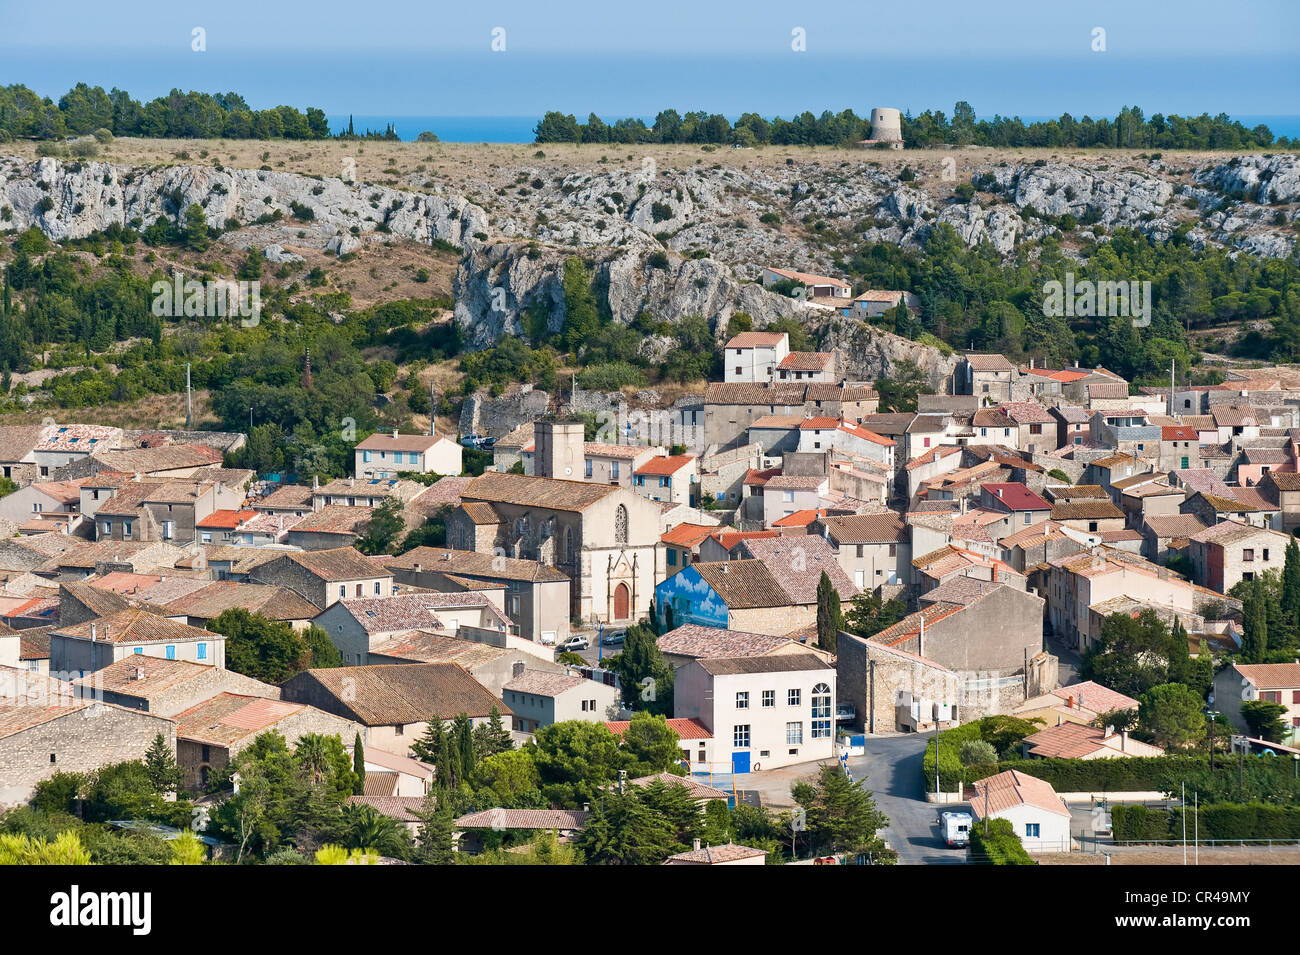 France, Aude, Corbieres, Roquefort des Corbieres, village and La Roque Cliff seen from St Martin Church - Stock Image